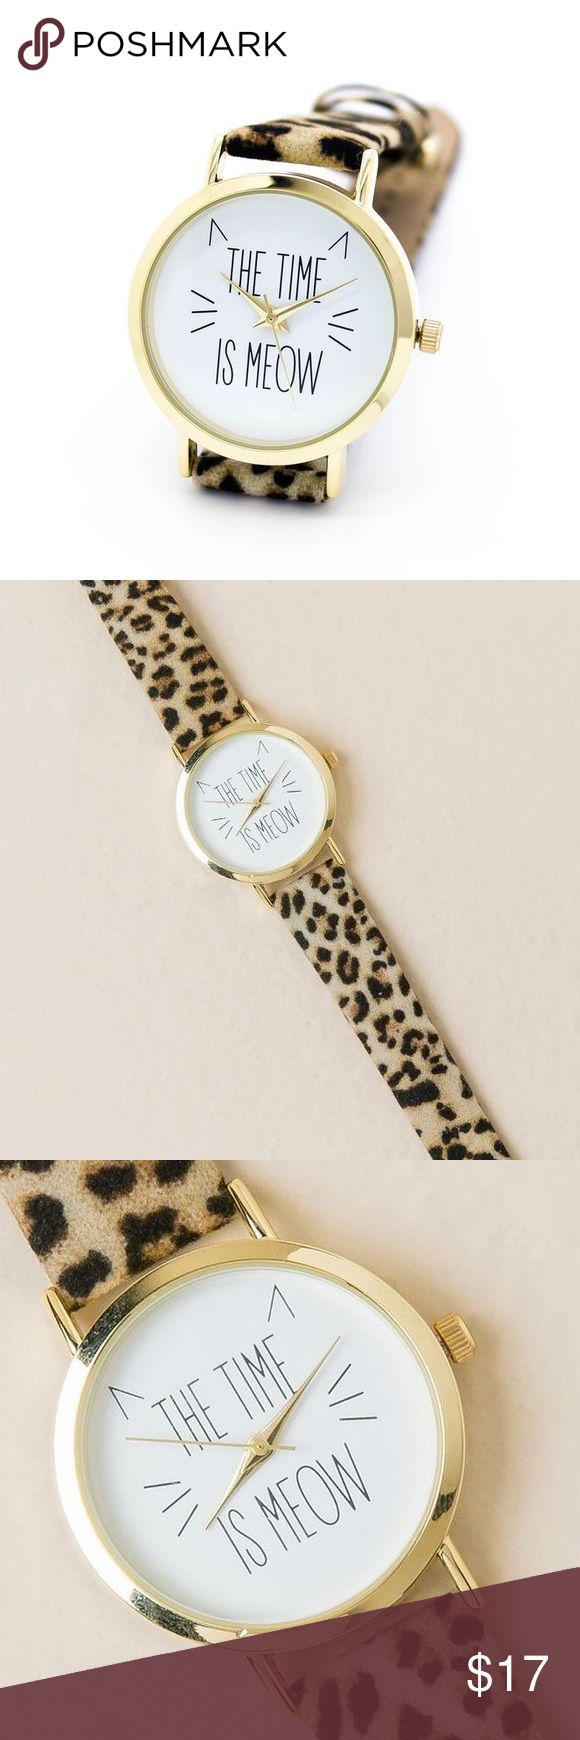 The Time is Meow Warch Perfect for the cat lover! Leopard print band, cute cat face details, stainless steel back. Made in Japan. Francesca's Jewelry